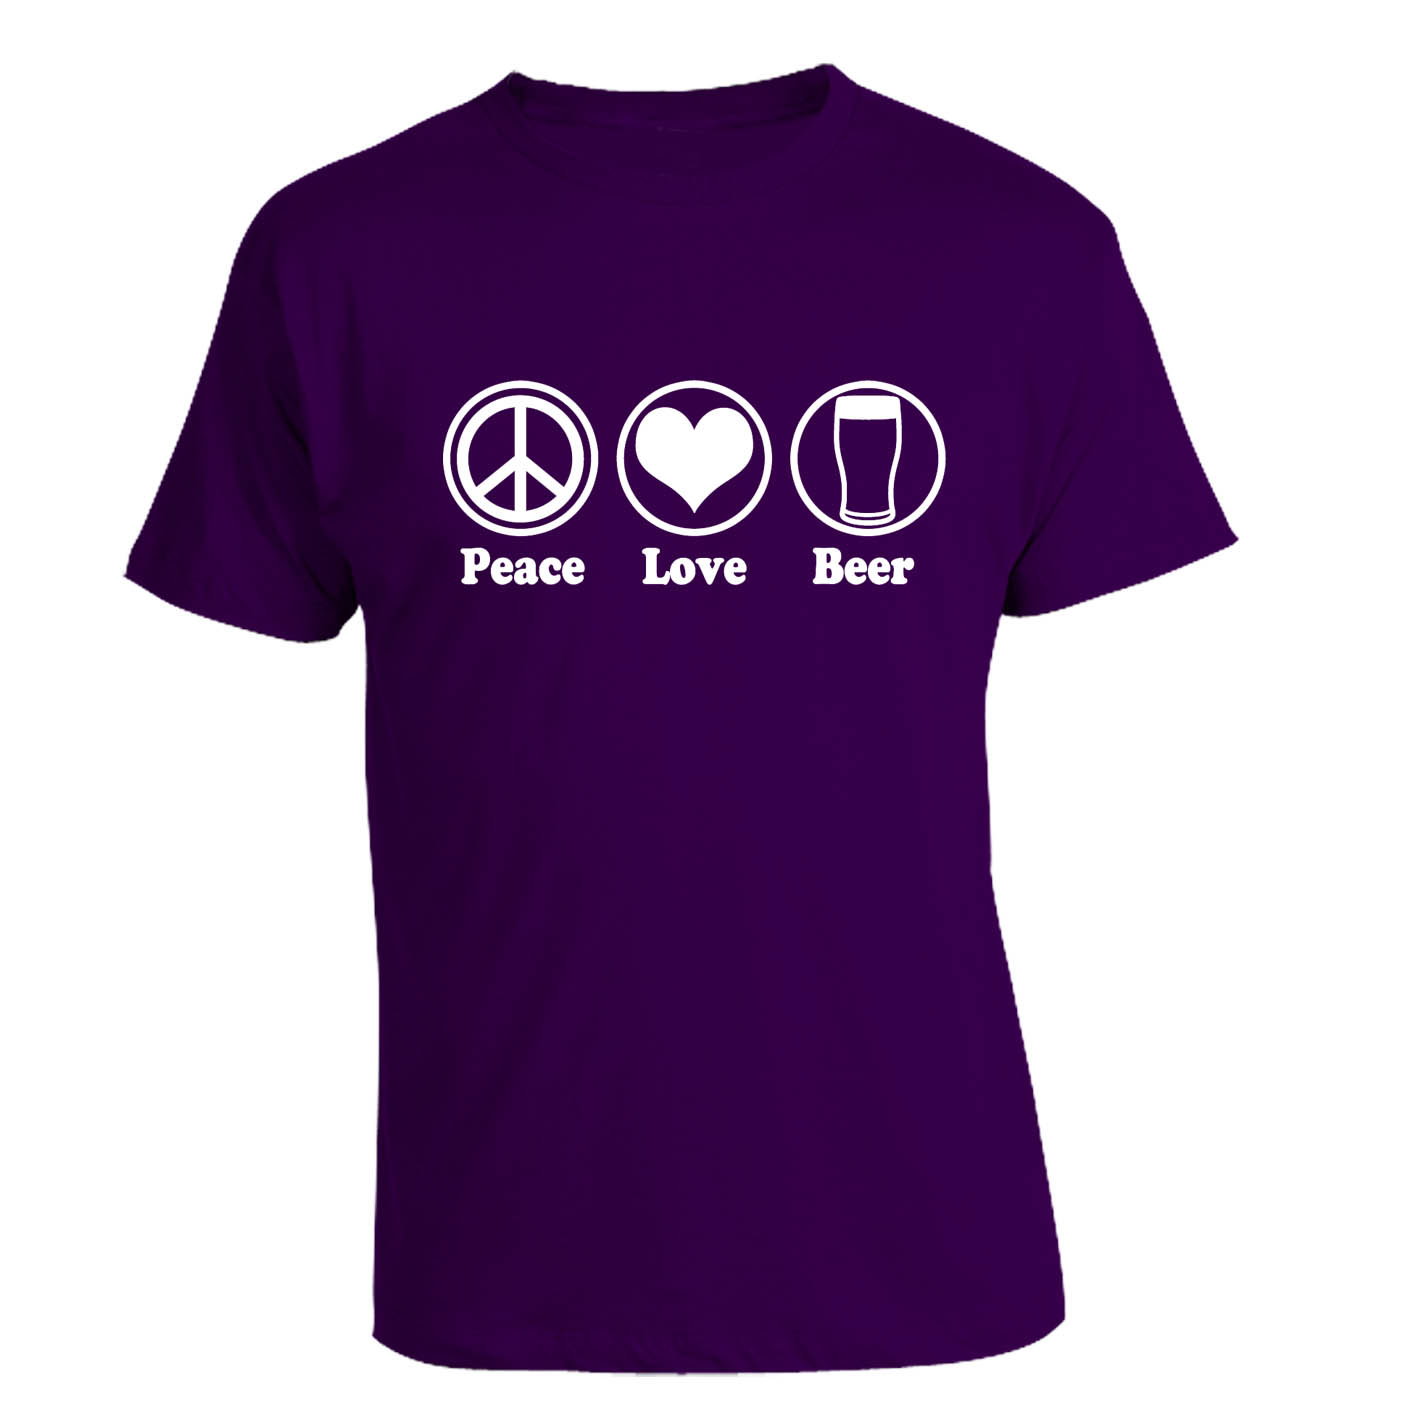 peace love beer t shirt. Black Bedroom Furniture Sets. Home Design Ideas